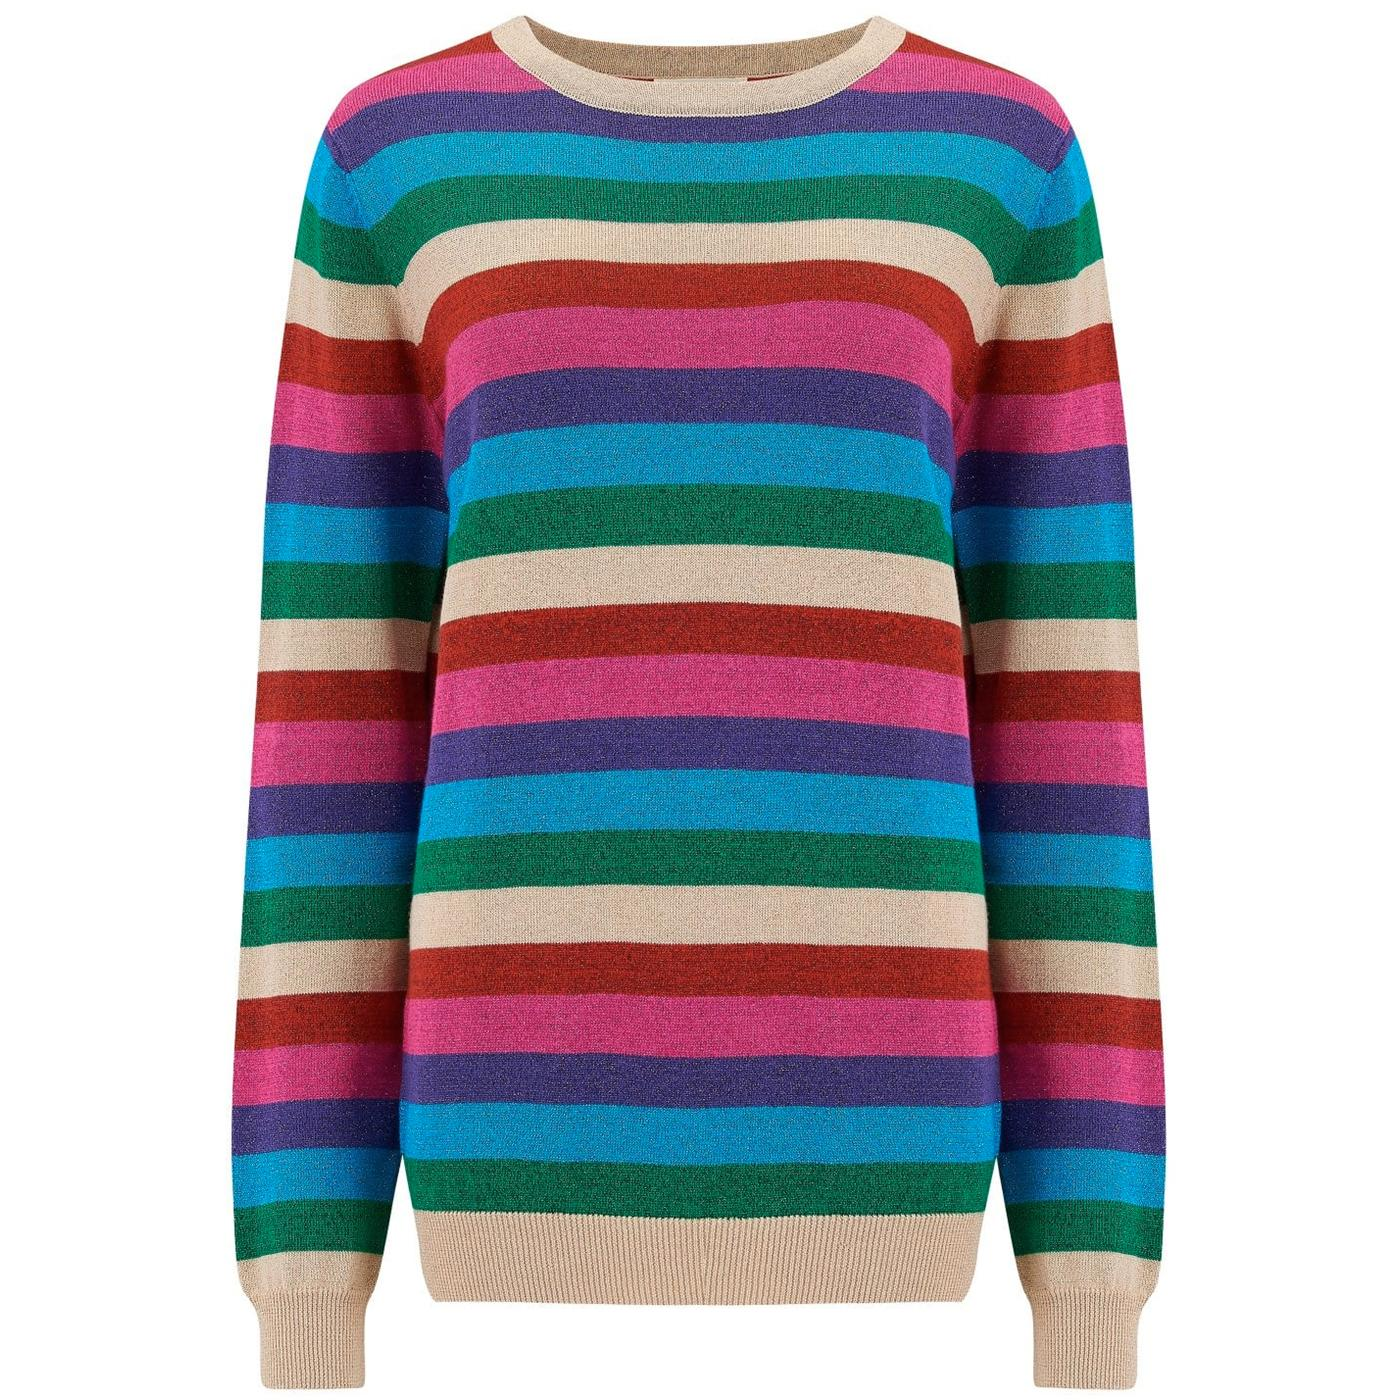 Alex SUGARHILL BRIGHTON 80s Rainbow Lurex Sweater